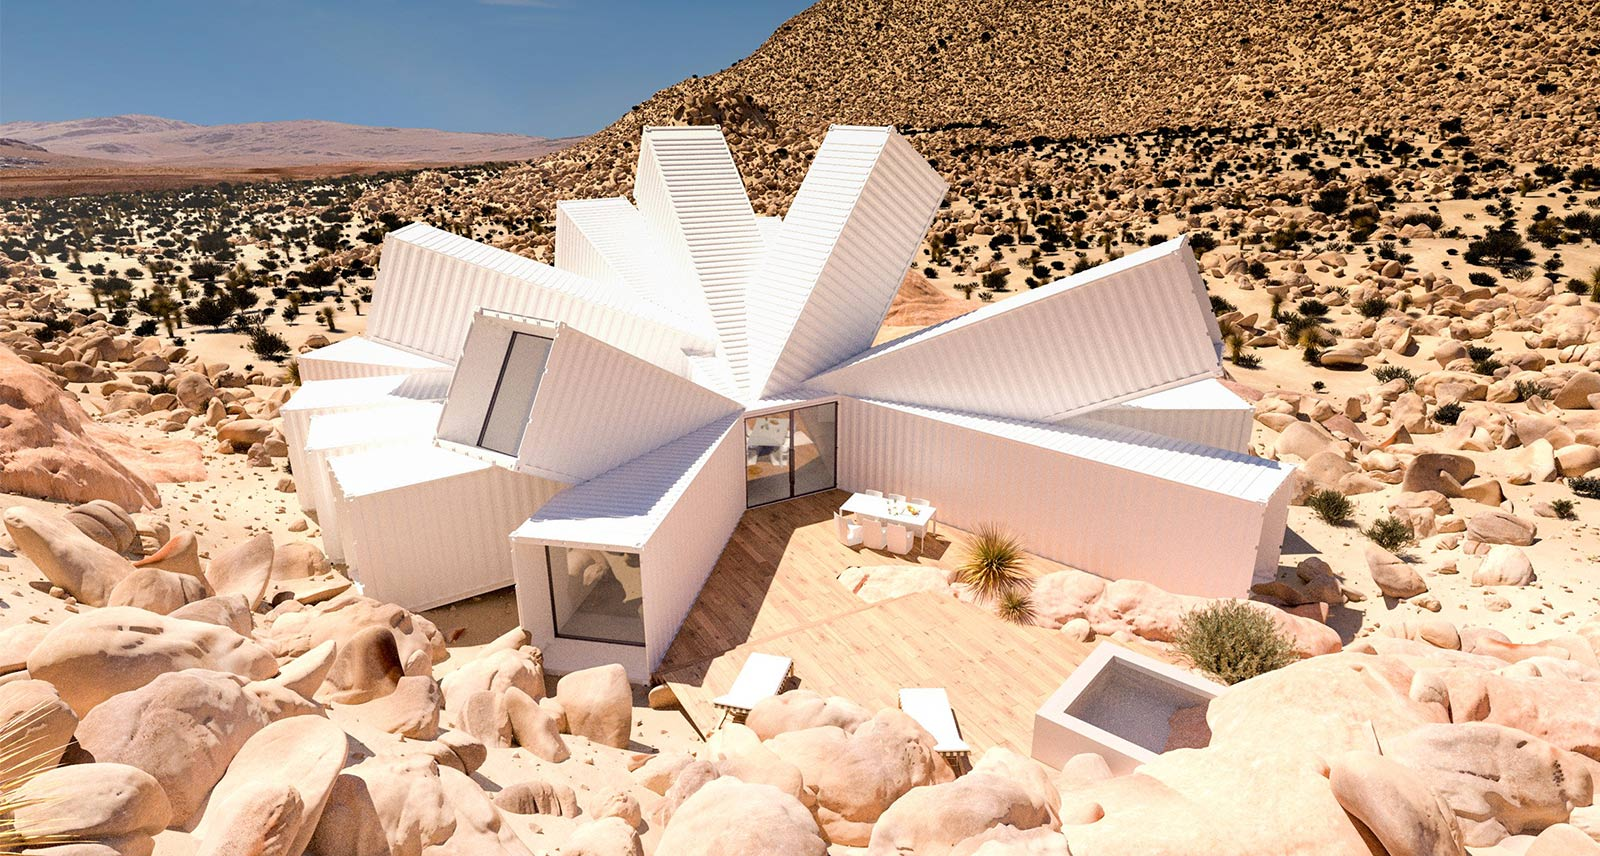 This Shipping Container Home in the Desert Looks Like a Hunter S. Thompson Acid Trip